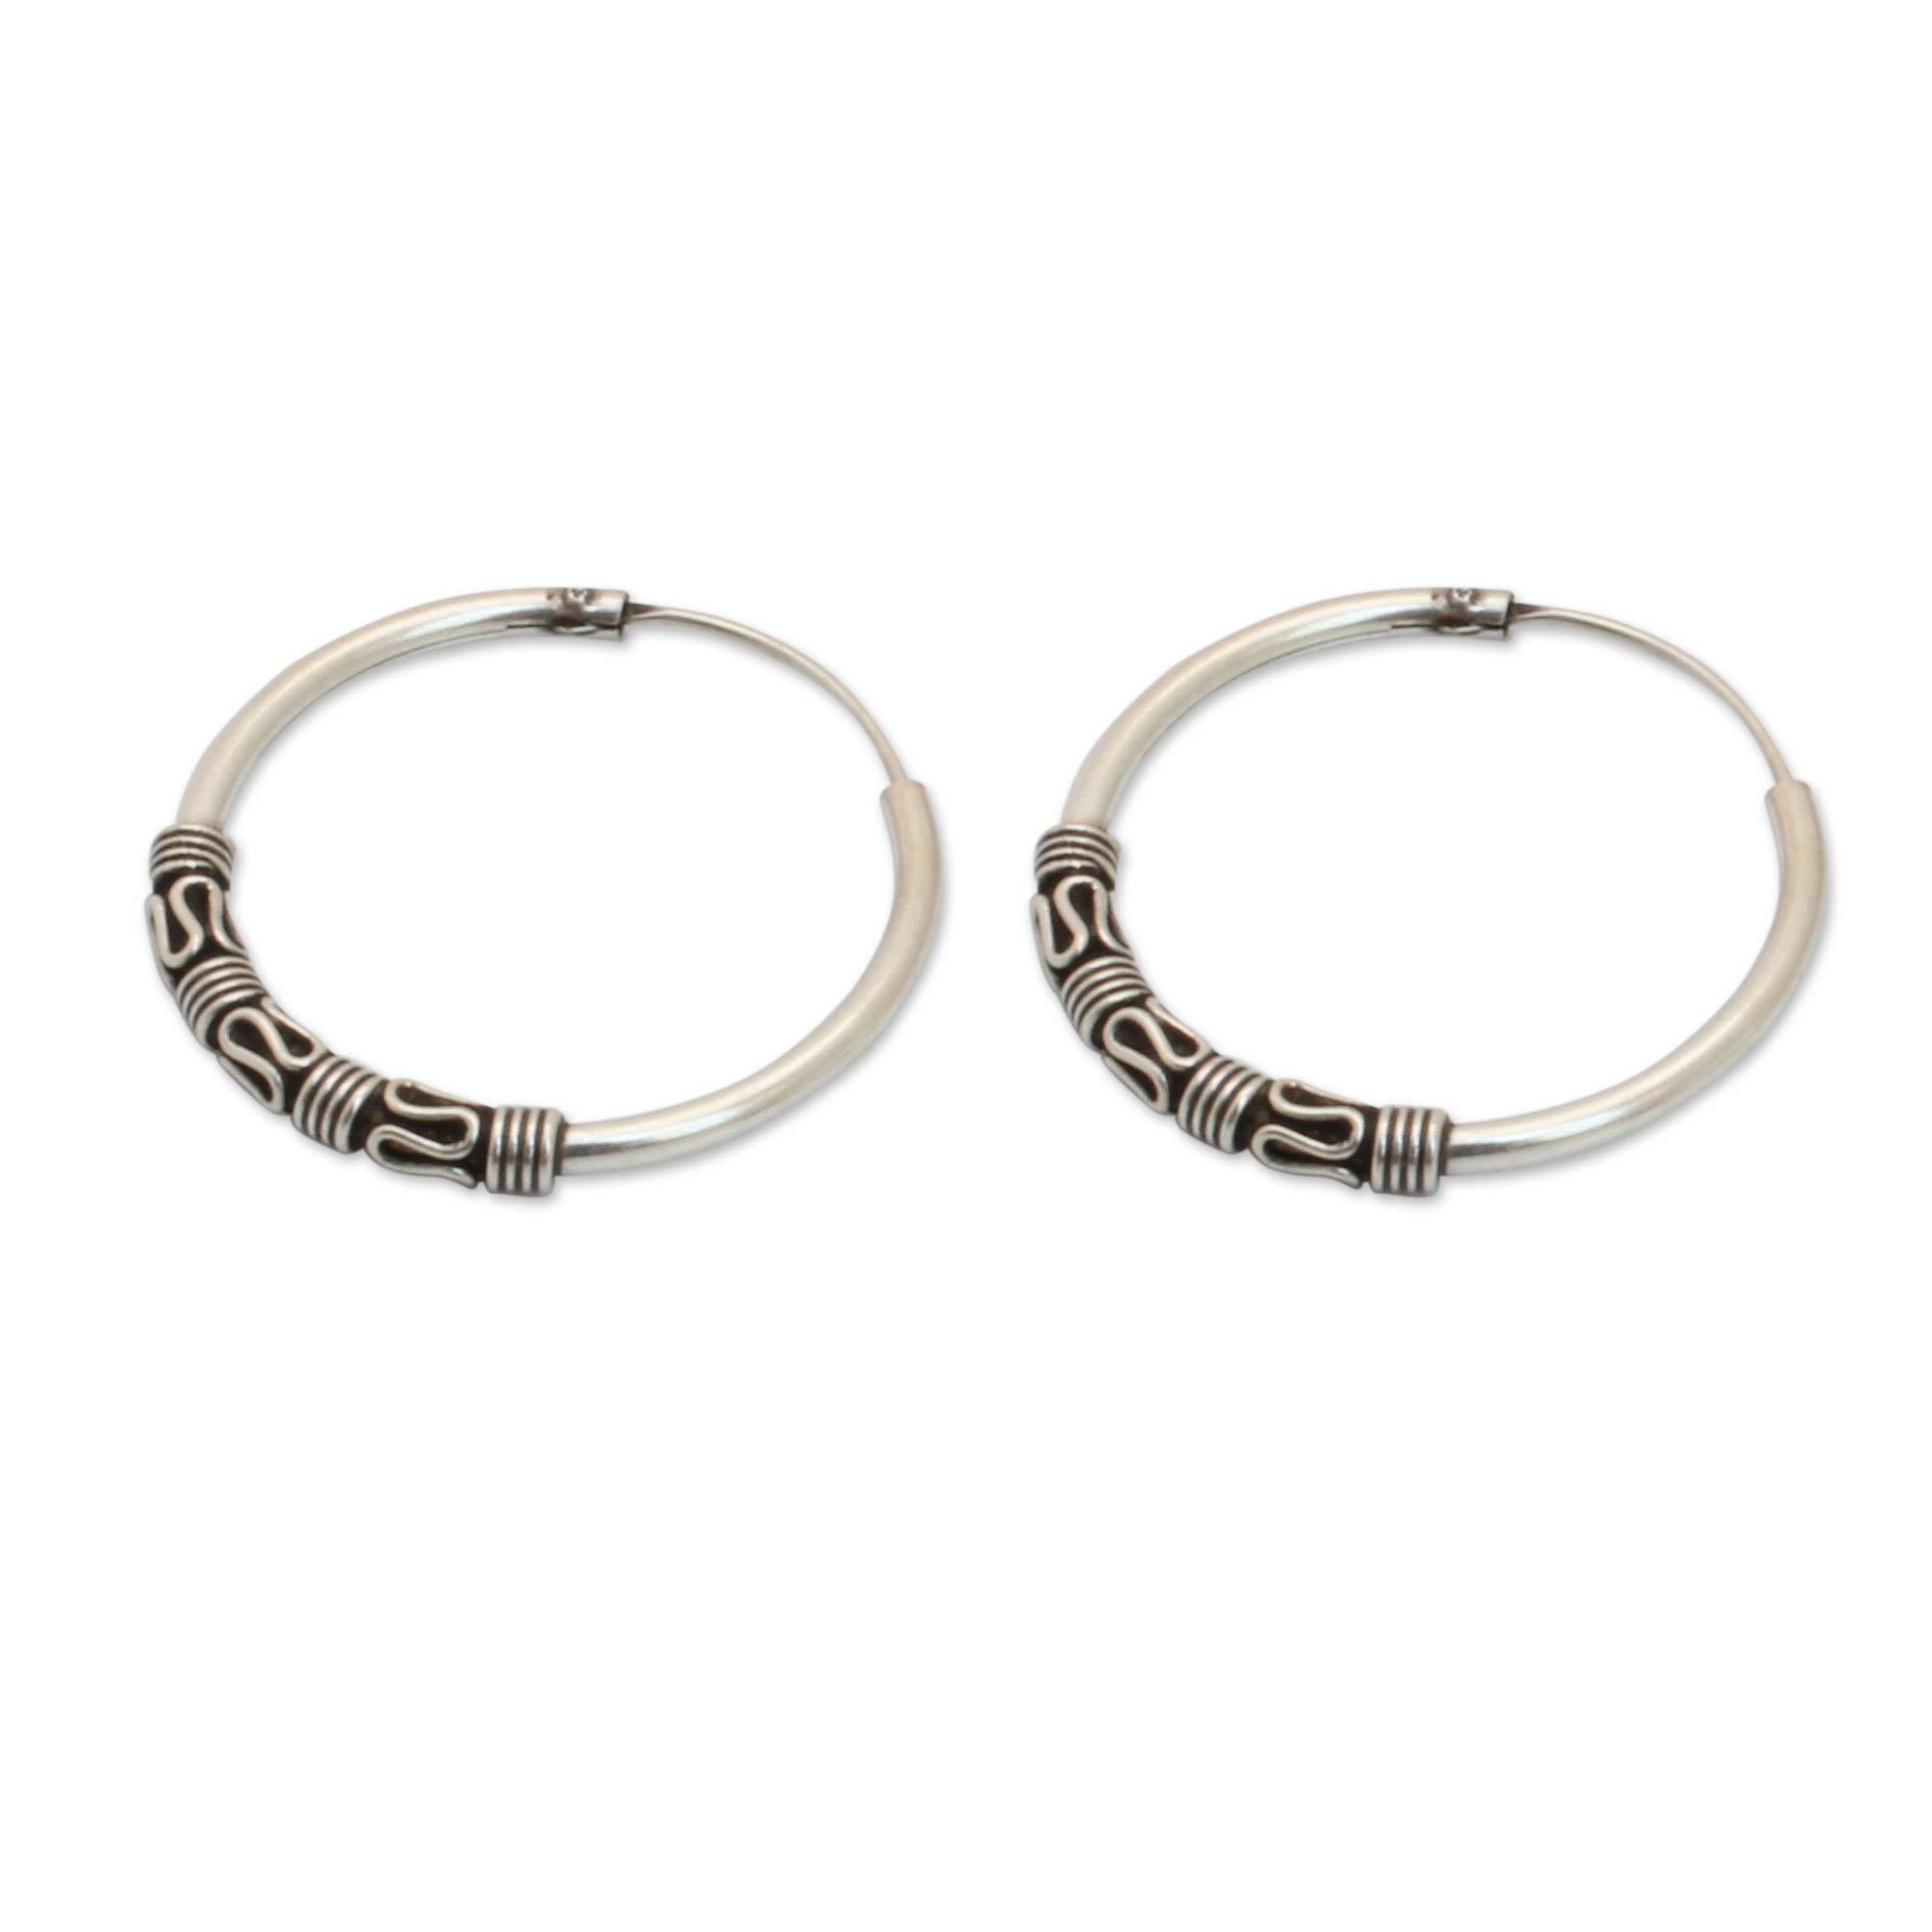 Handmade Sterling Silver Traditional Thai Earrings Thailand On Free Shipping Orders Over 45 10332096